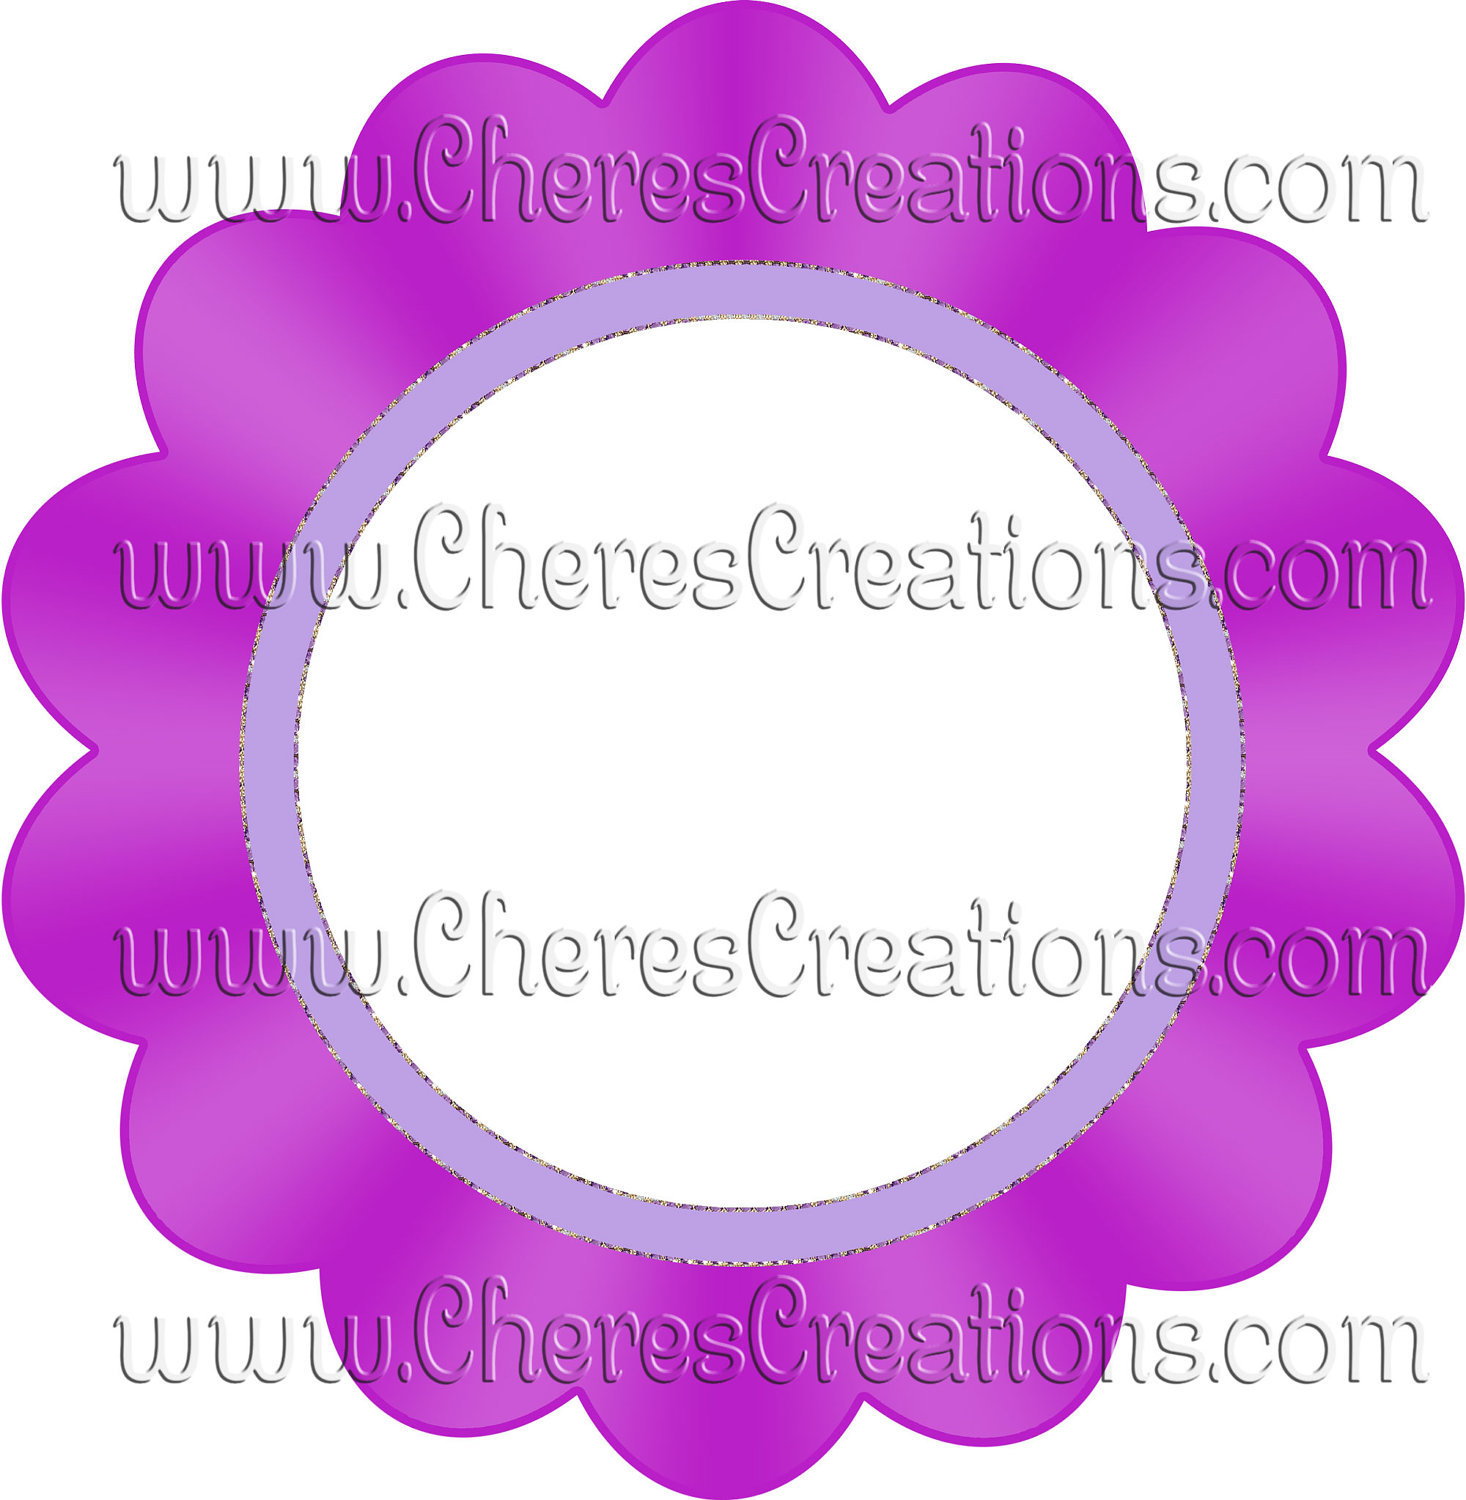 Colorful Flowers Clip Art Frames for Digital Scrap Booking Scrapbooking Craft